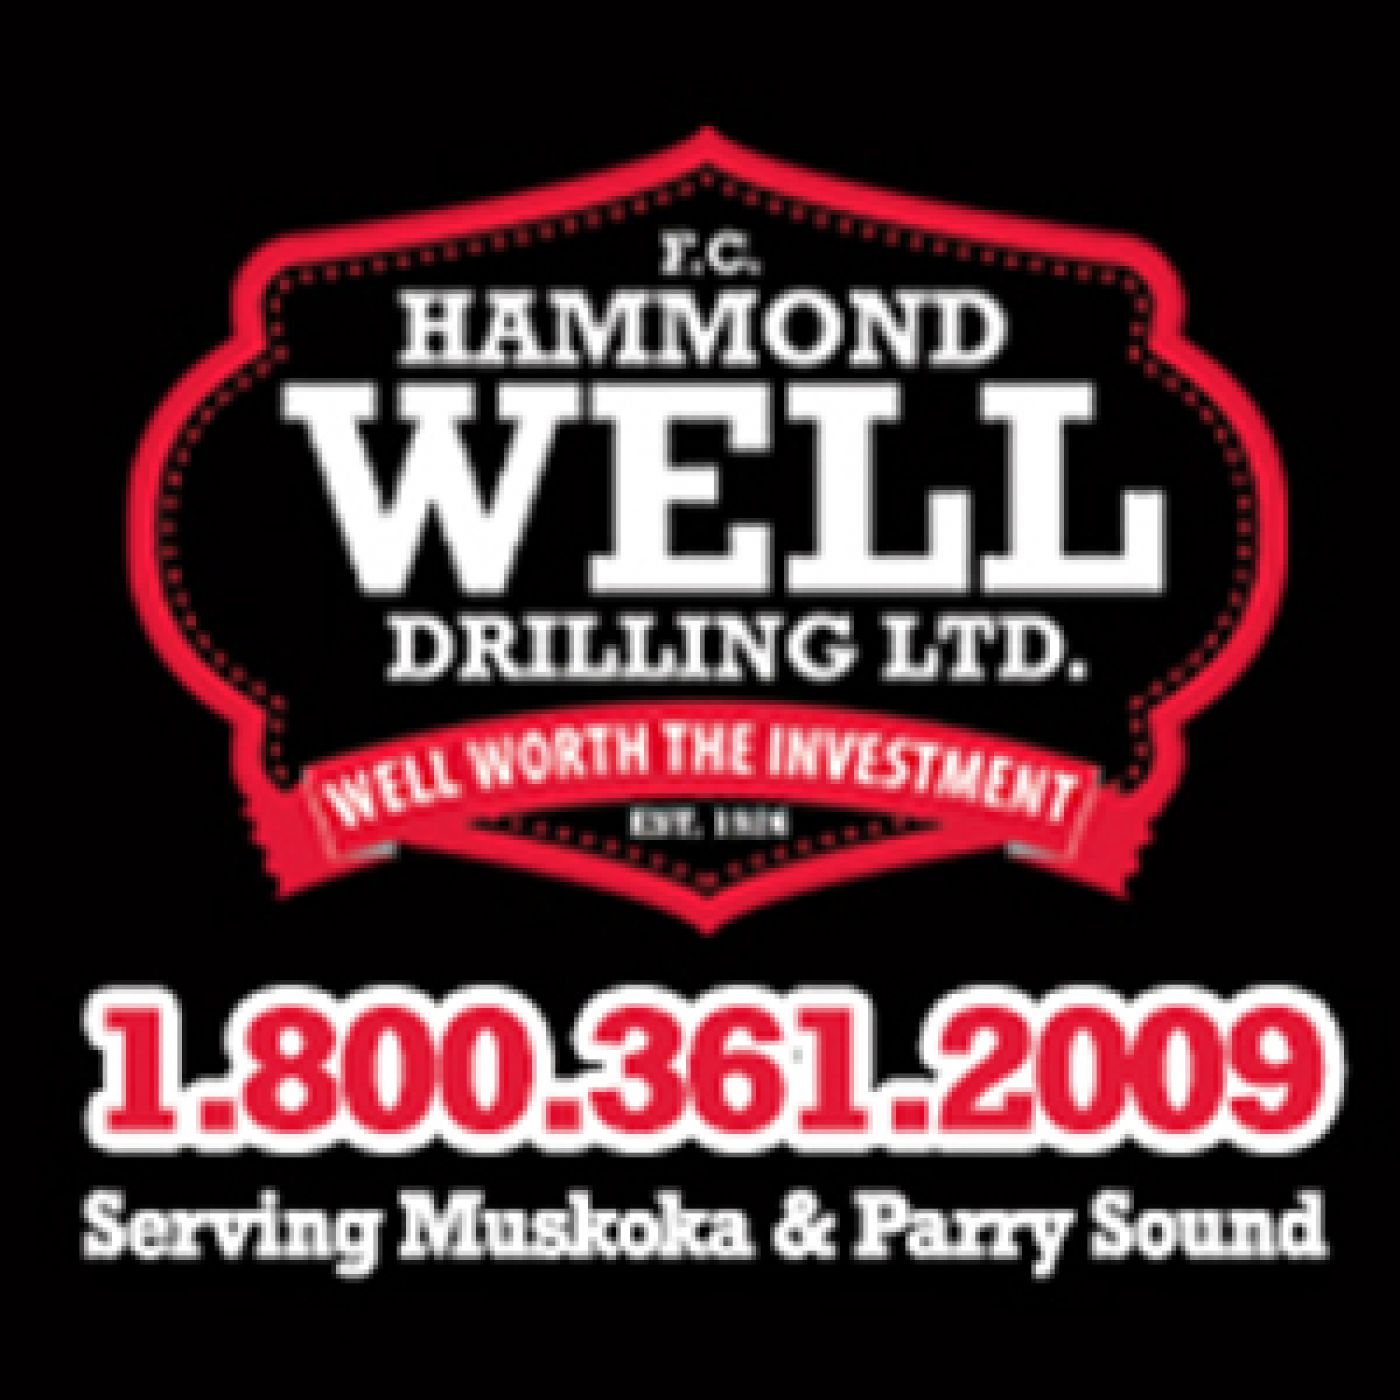 HAMMOND WELL DRILLING